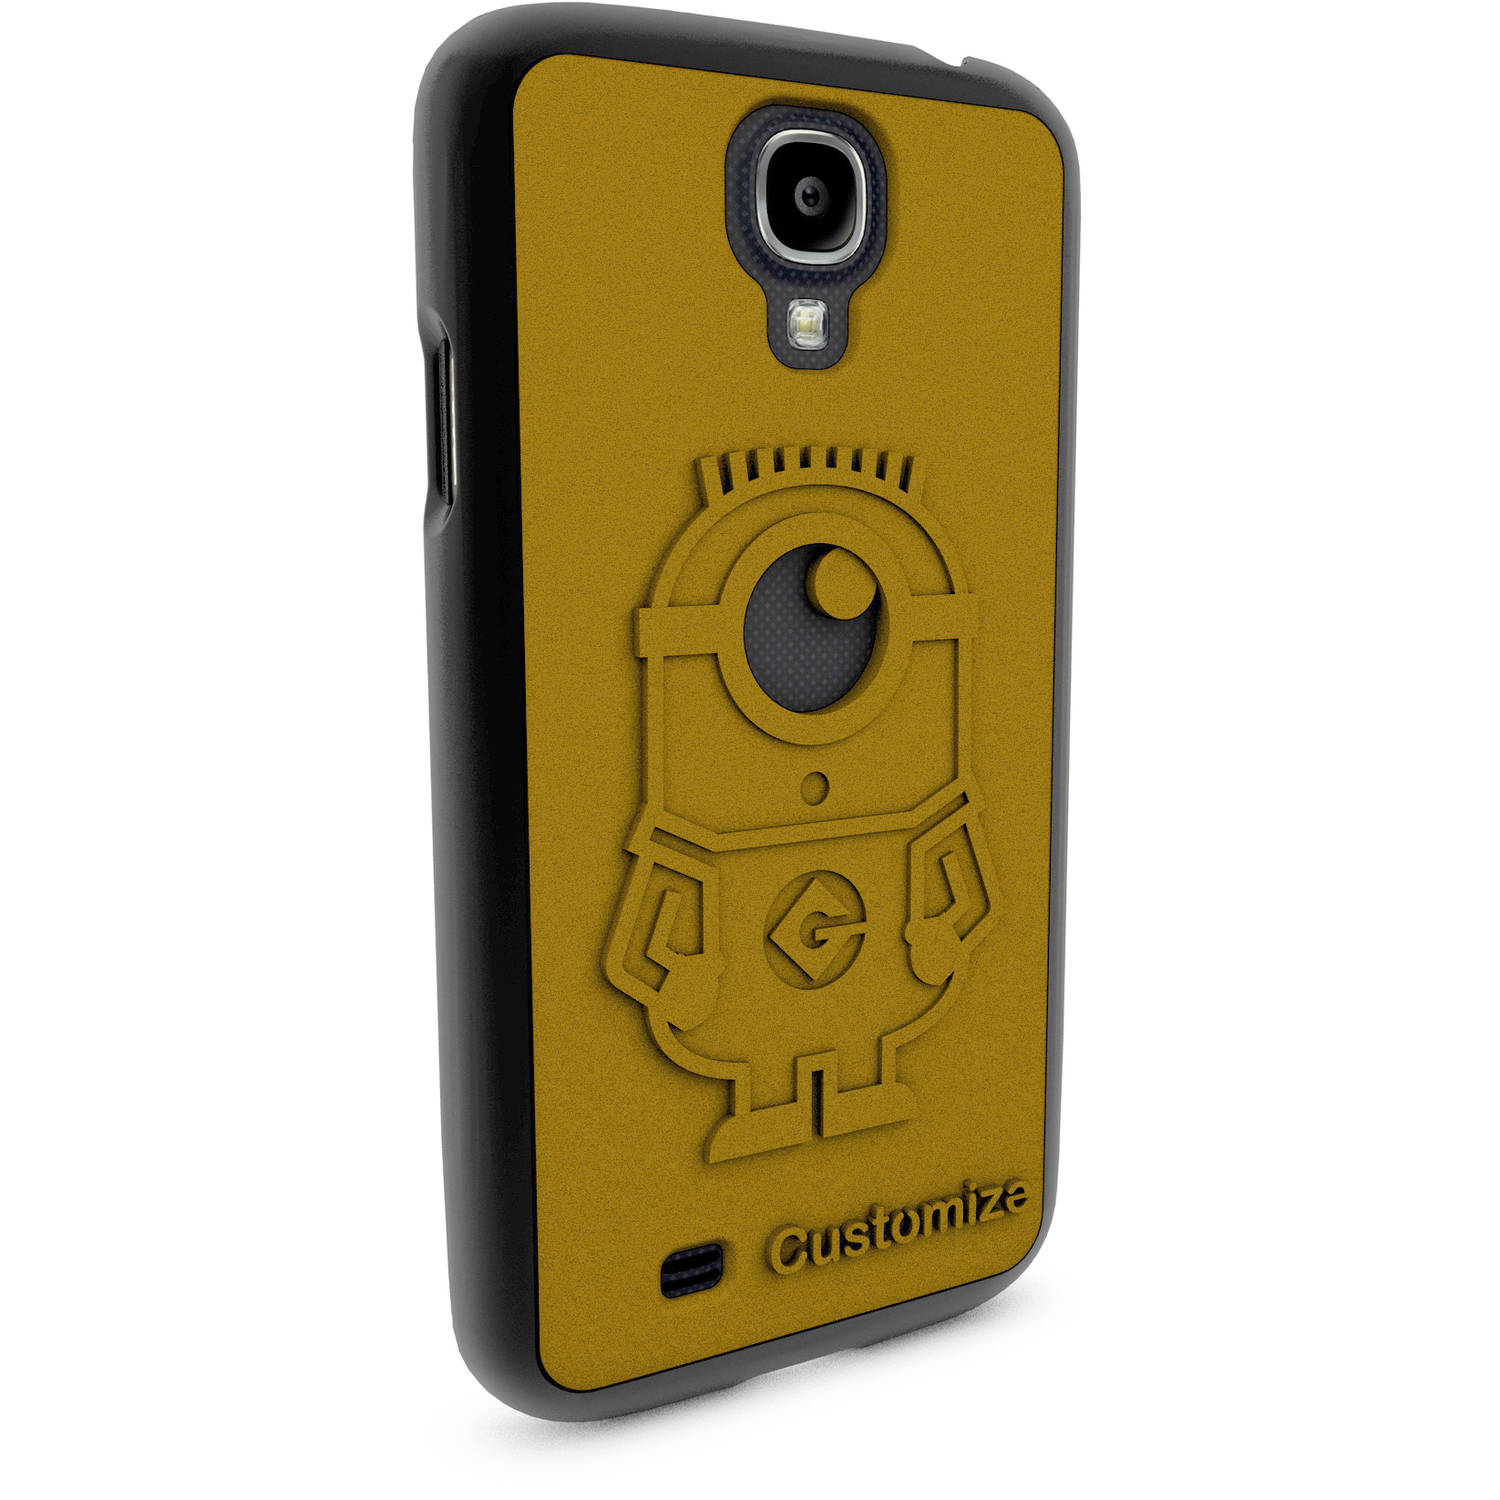 Samsung Galaxy S4 3D Printed Custom Phone Case - Despicable Me - Carl